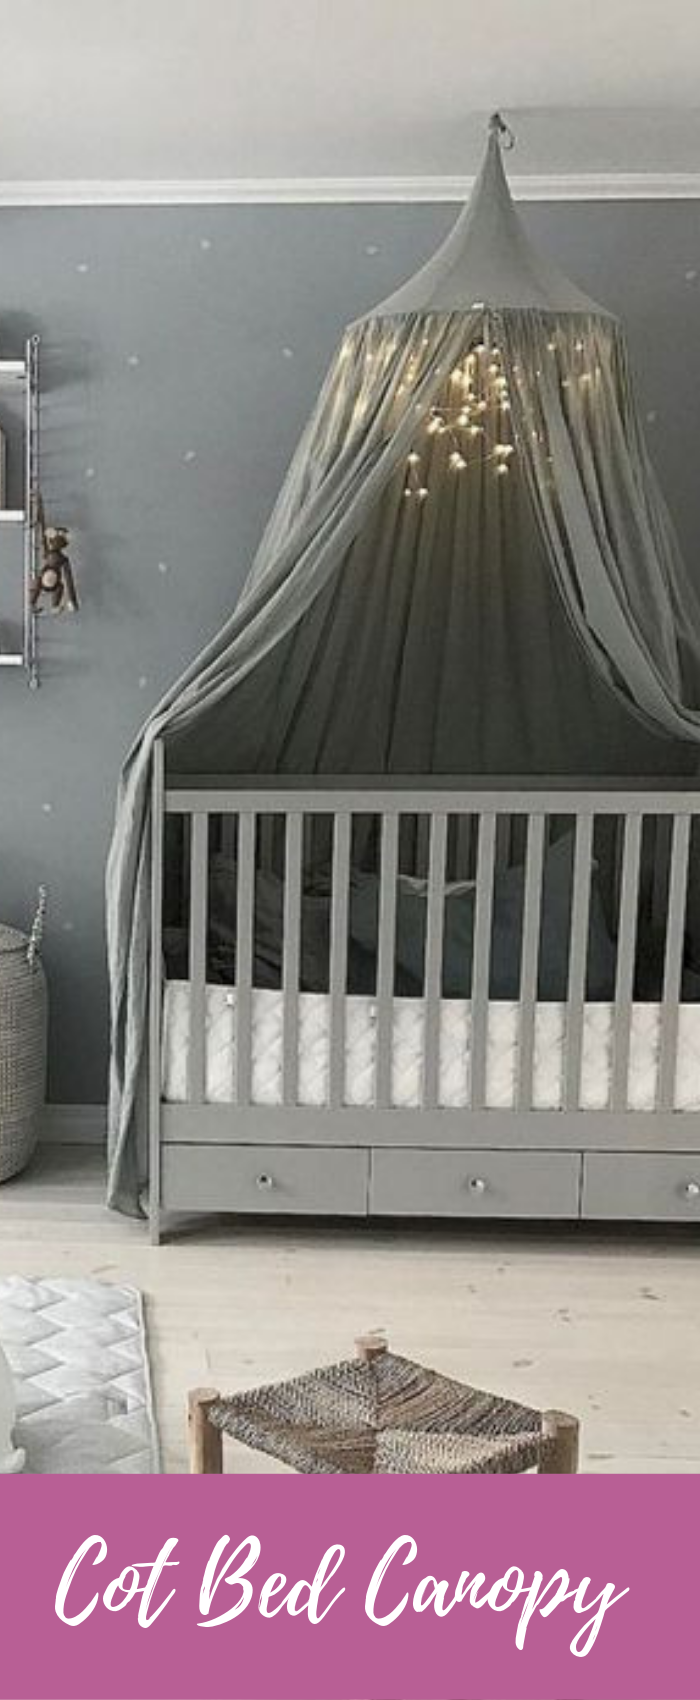 - COT BED CANOPY Blue Decor, Blue Bedding, Cot Bedding